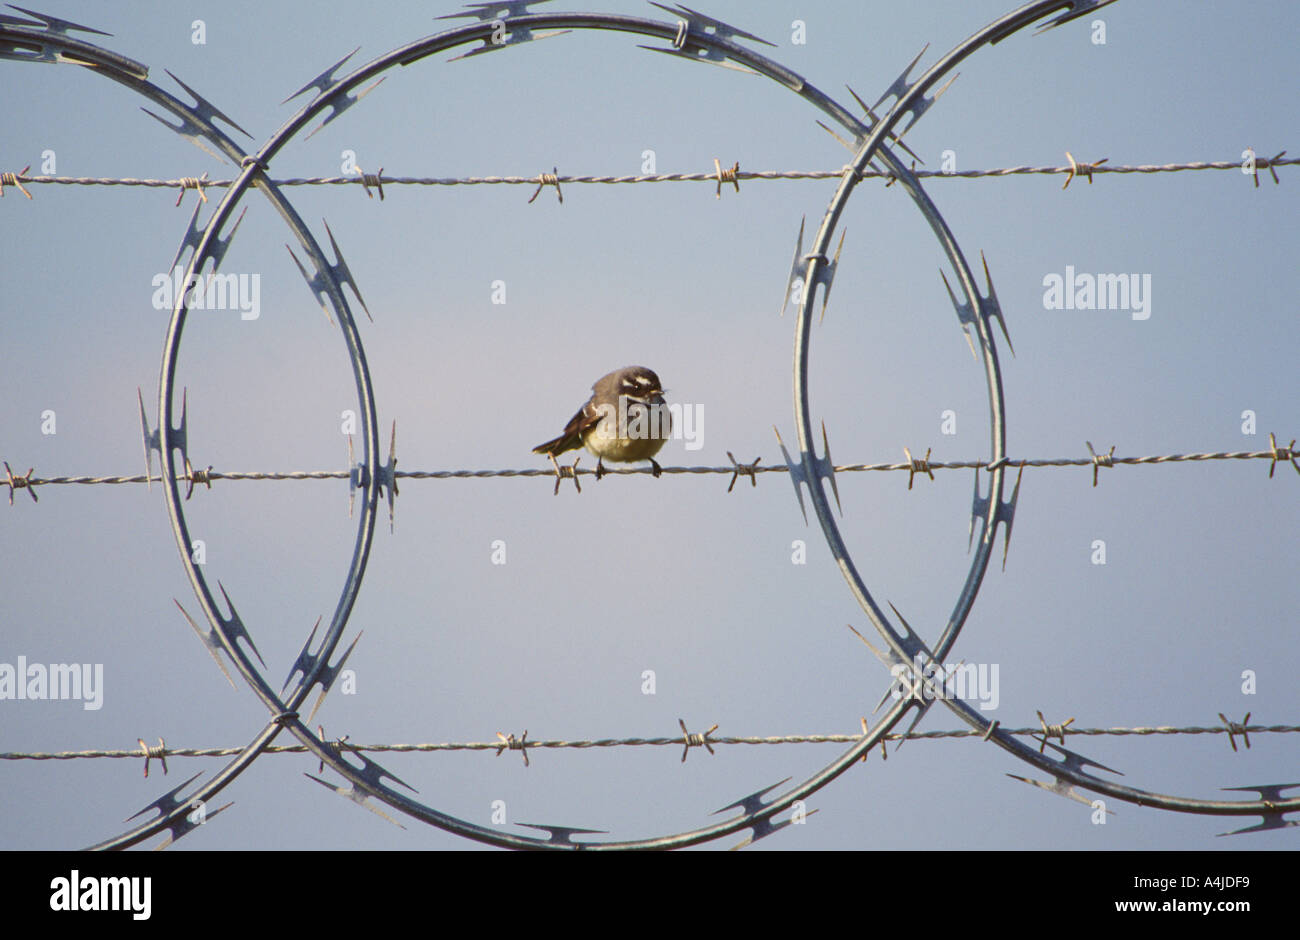 Sitting On Barb Wire Fence Stock Photos & Sitting On Barb Wire Fence ...